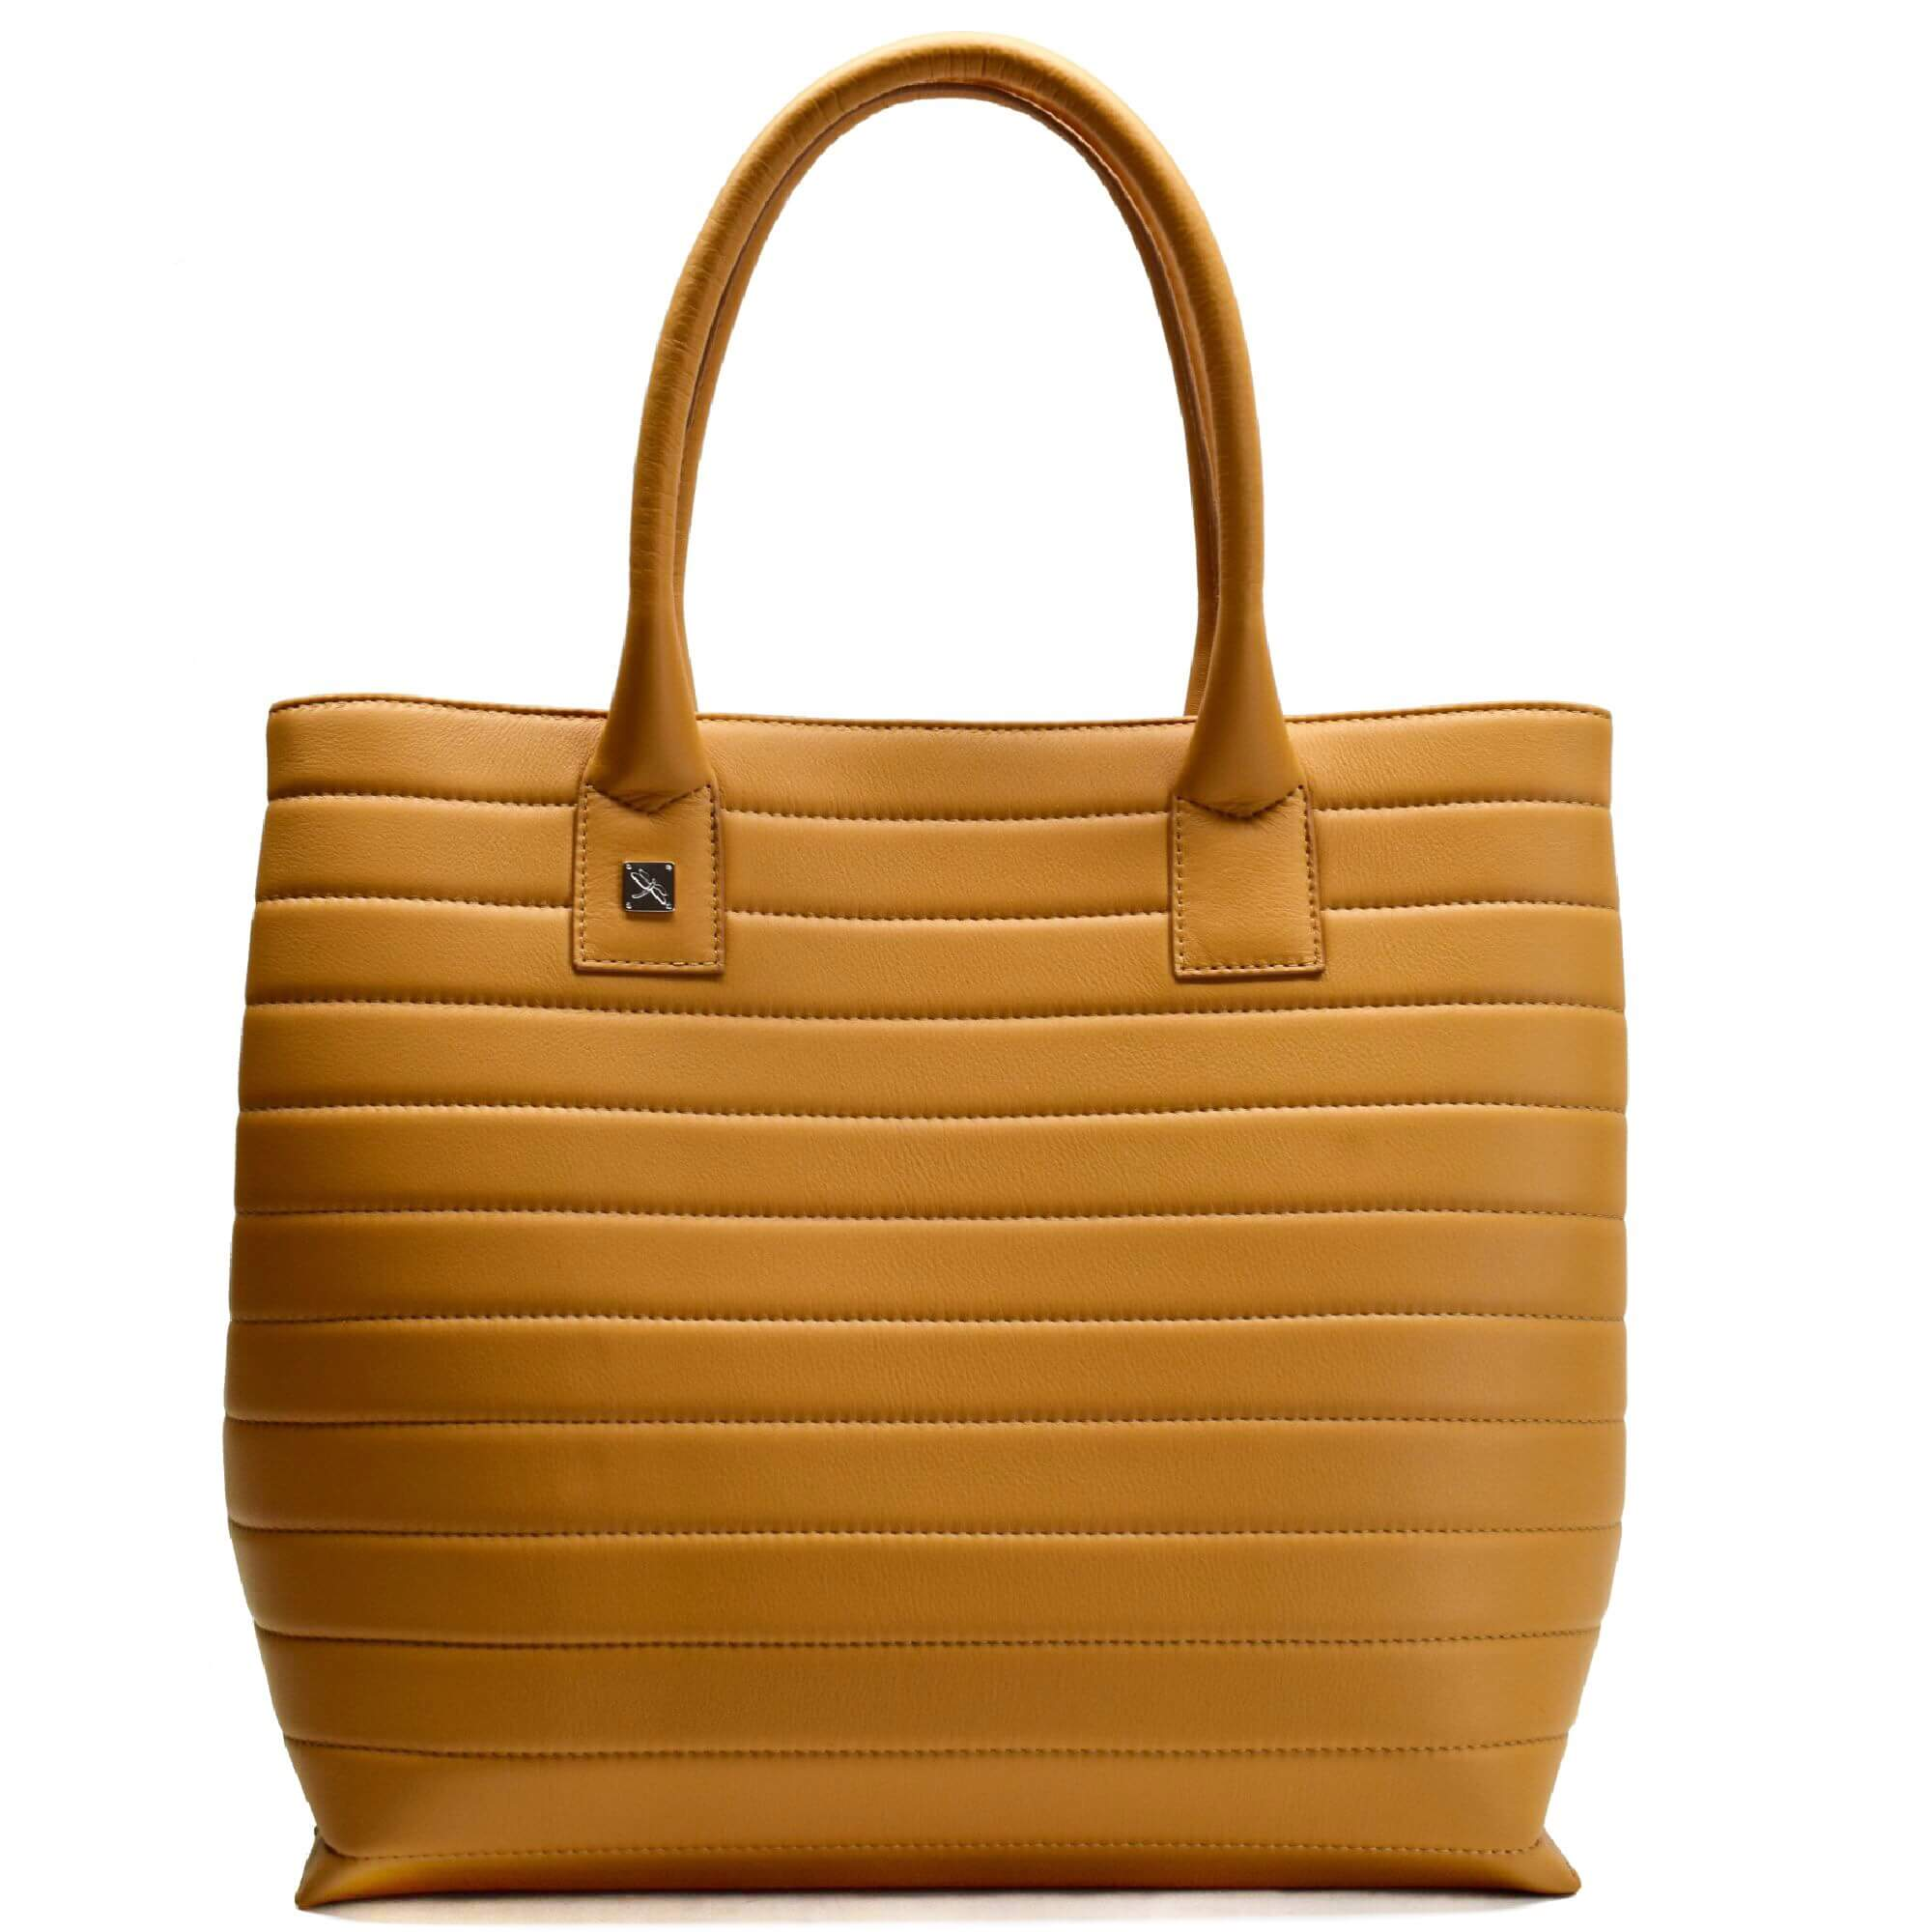 Camel Tote Leather Handbag. Natalia M